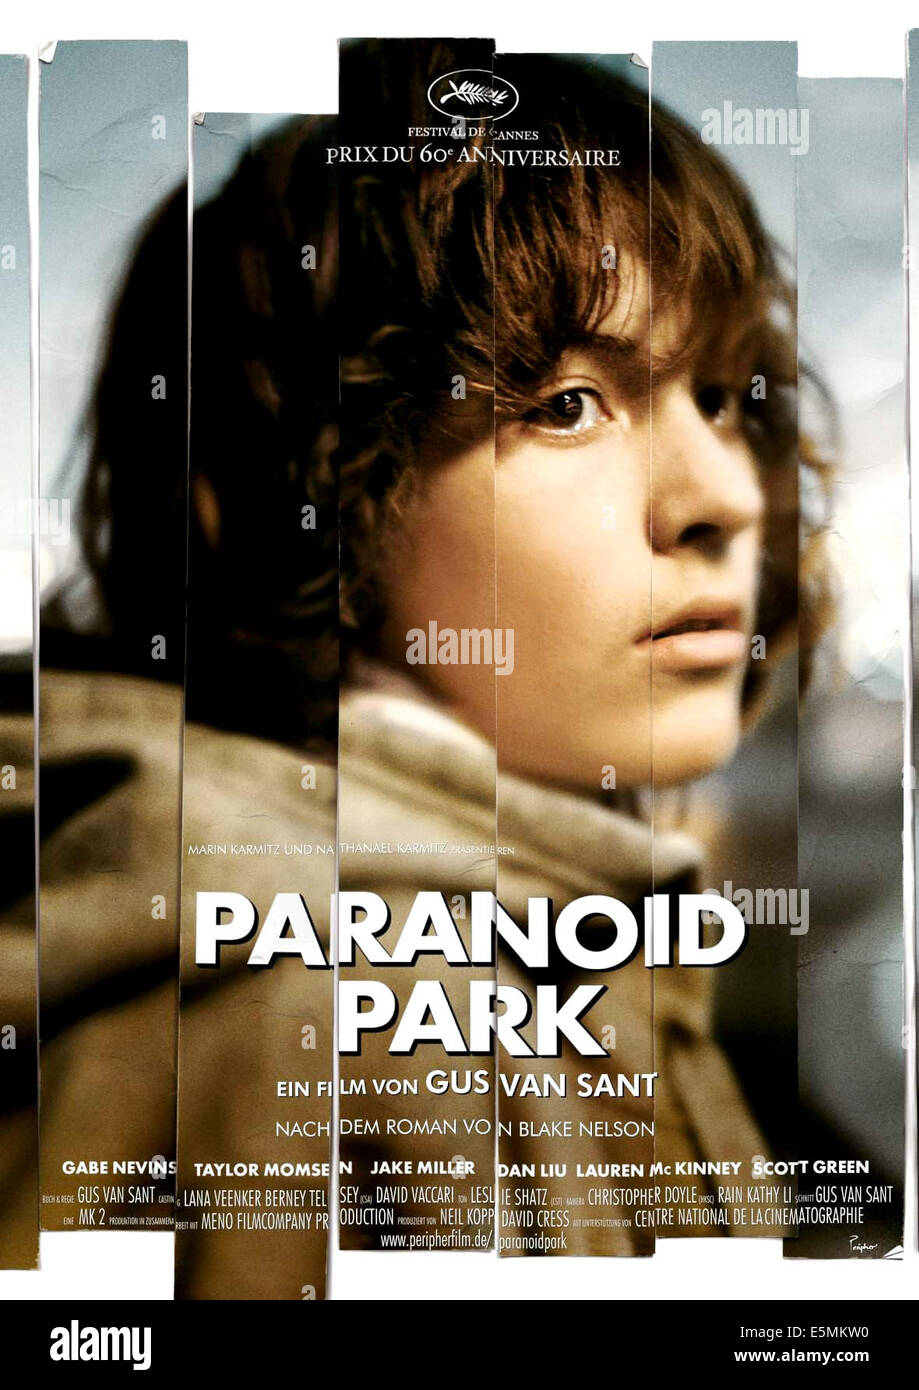 PARANOID PARK, Gabe Nevins, 2007. ©IFC Films/courtesy Everett Collection Stock Photo